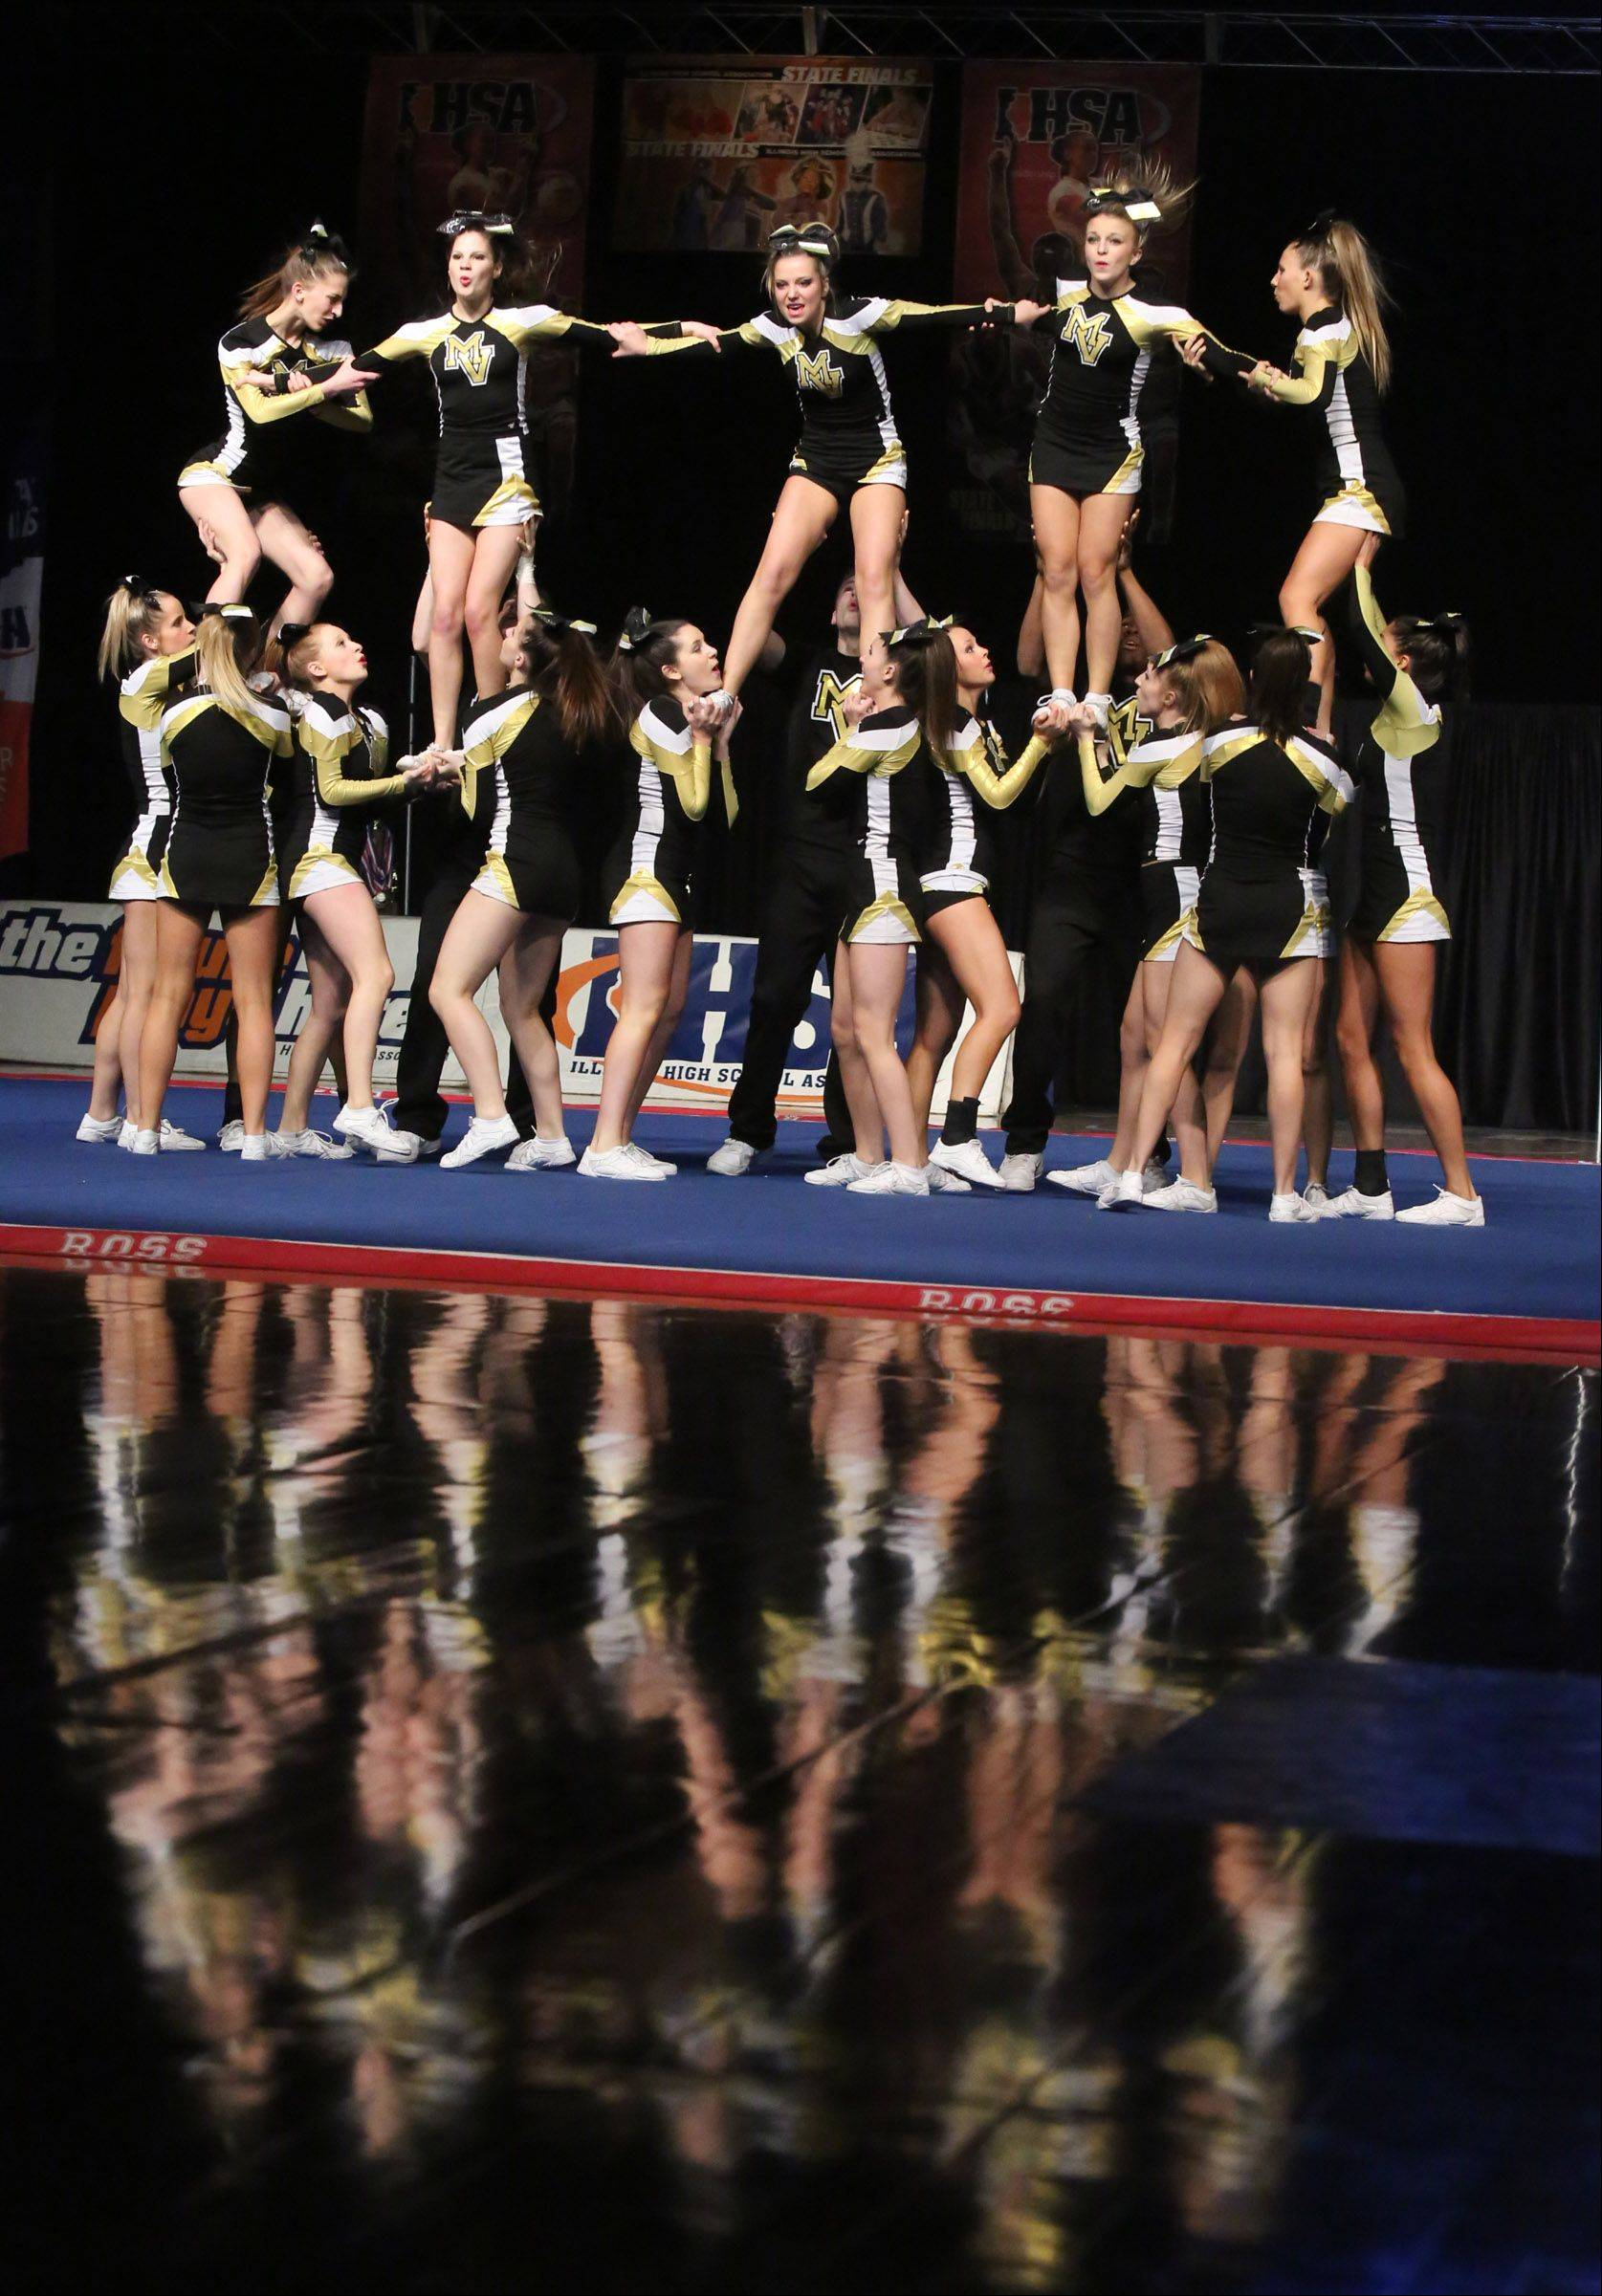 Metea Valley High School's cheer team performs in the coed team category.